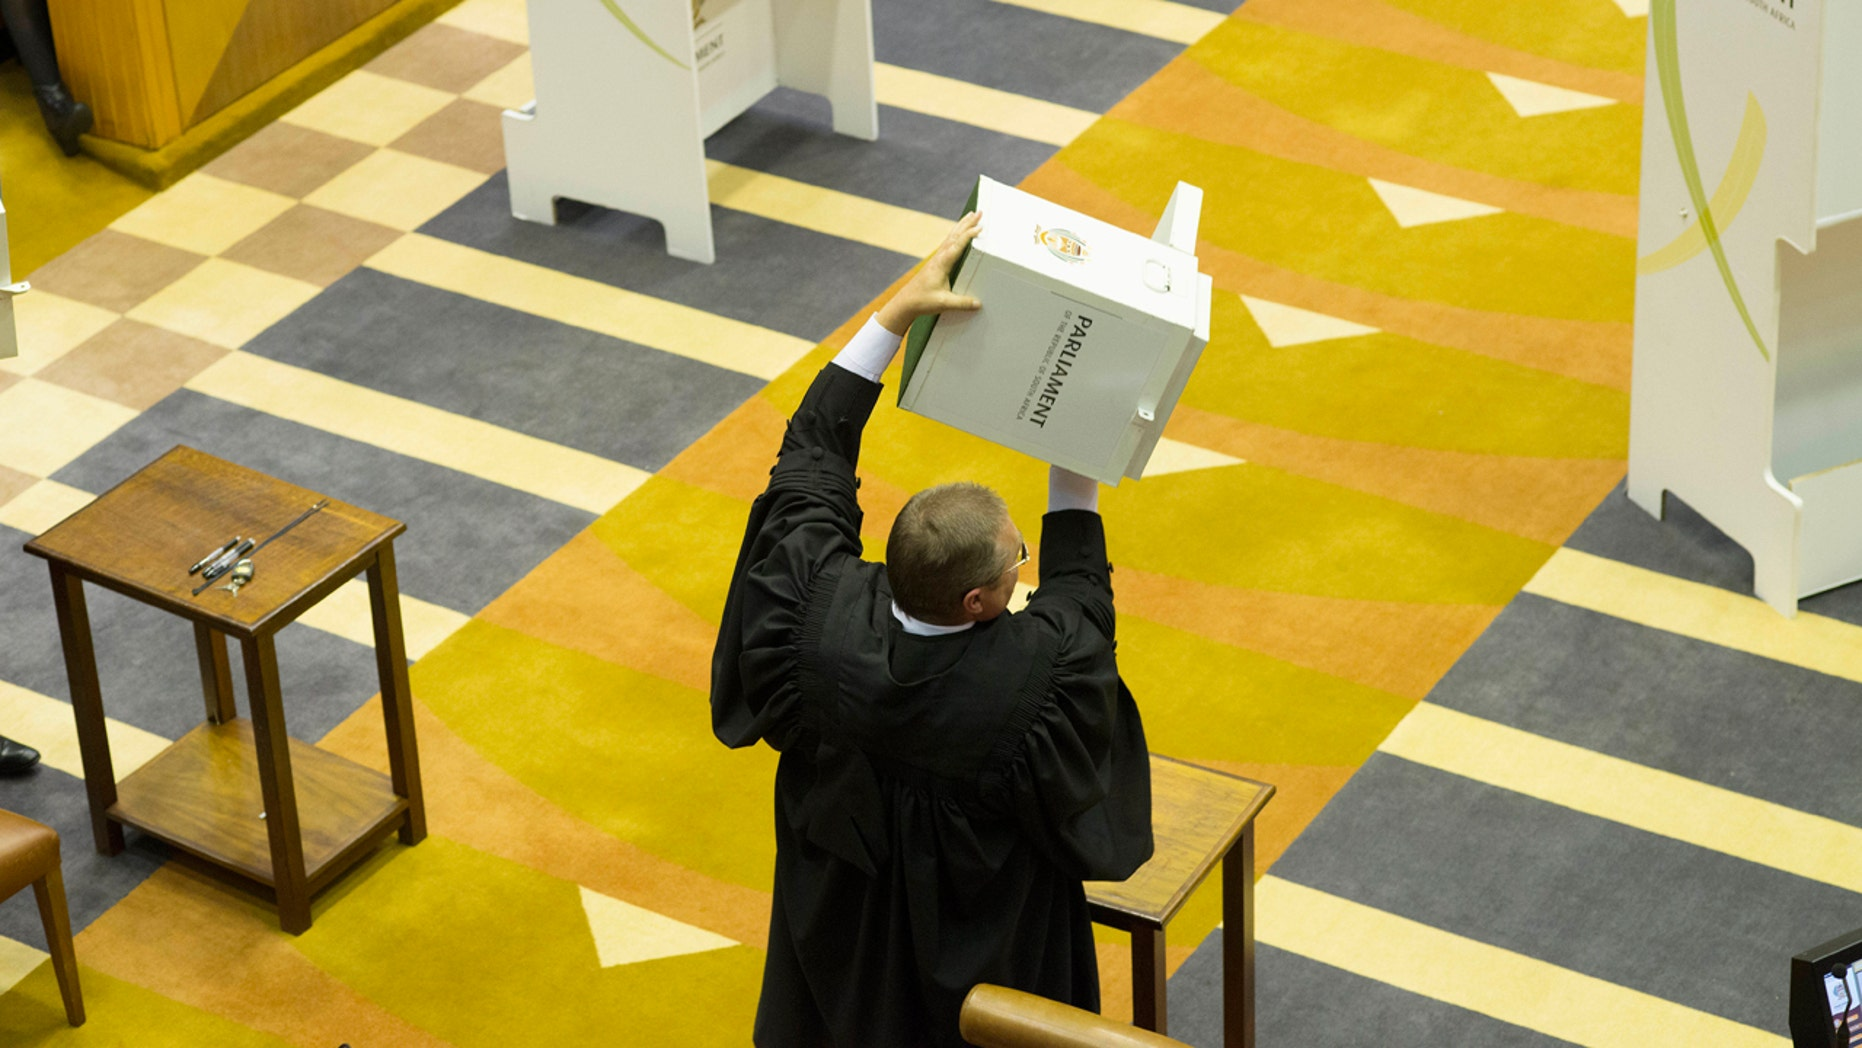 A parliamentary officer shows an empty ballot box to the South African parliament before voting for or against the motion of no confidence against South African president, Jacob Zuma in the South African parliament in Cape Town, South Africa, Tuesday, Aug. 8, 2017.